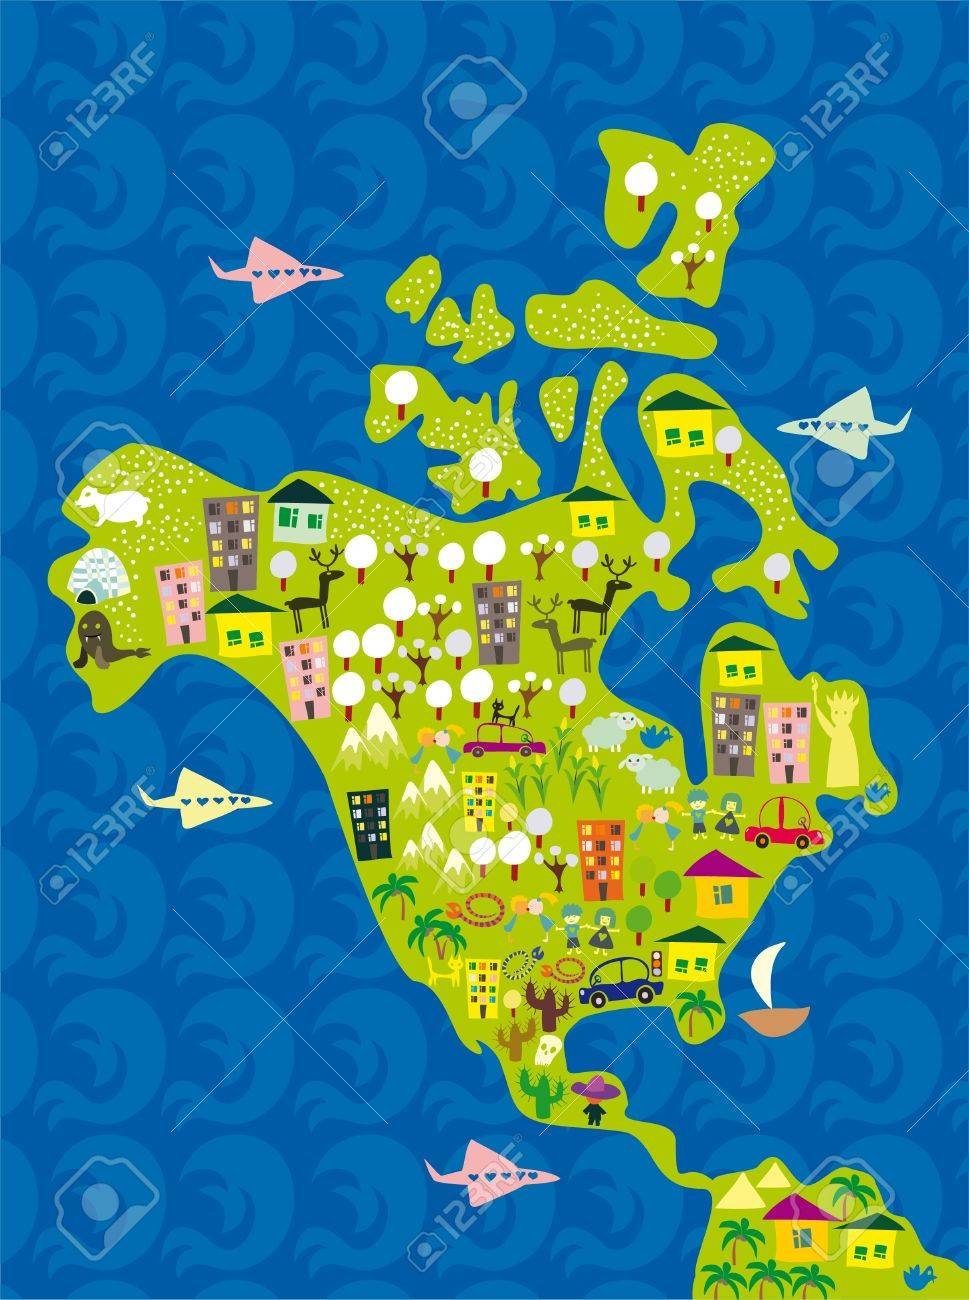 Cartoon Map Of Usa Royalty Free Cliparts Vectors And Stock - Images for map of usa